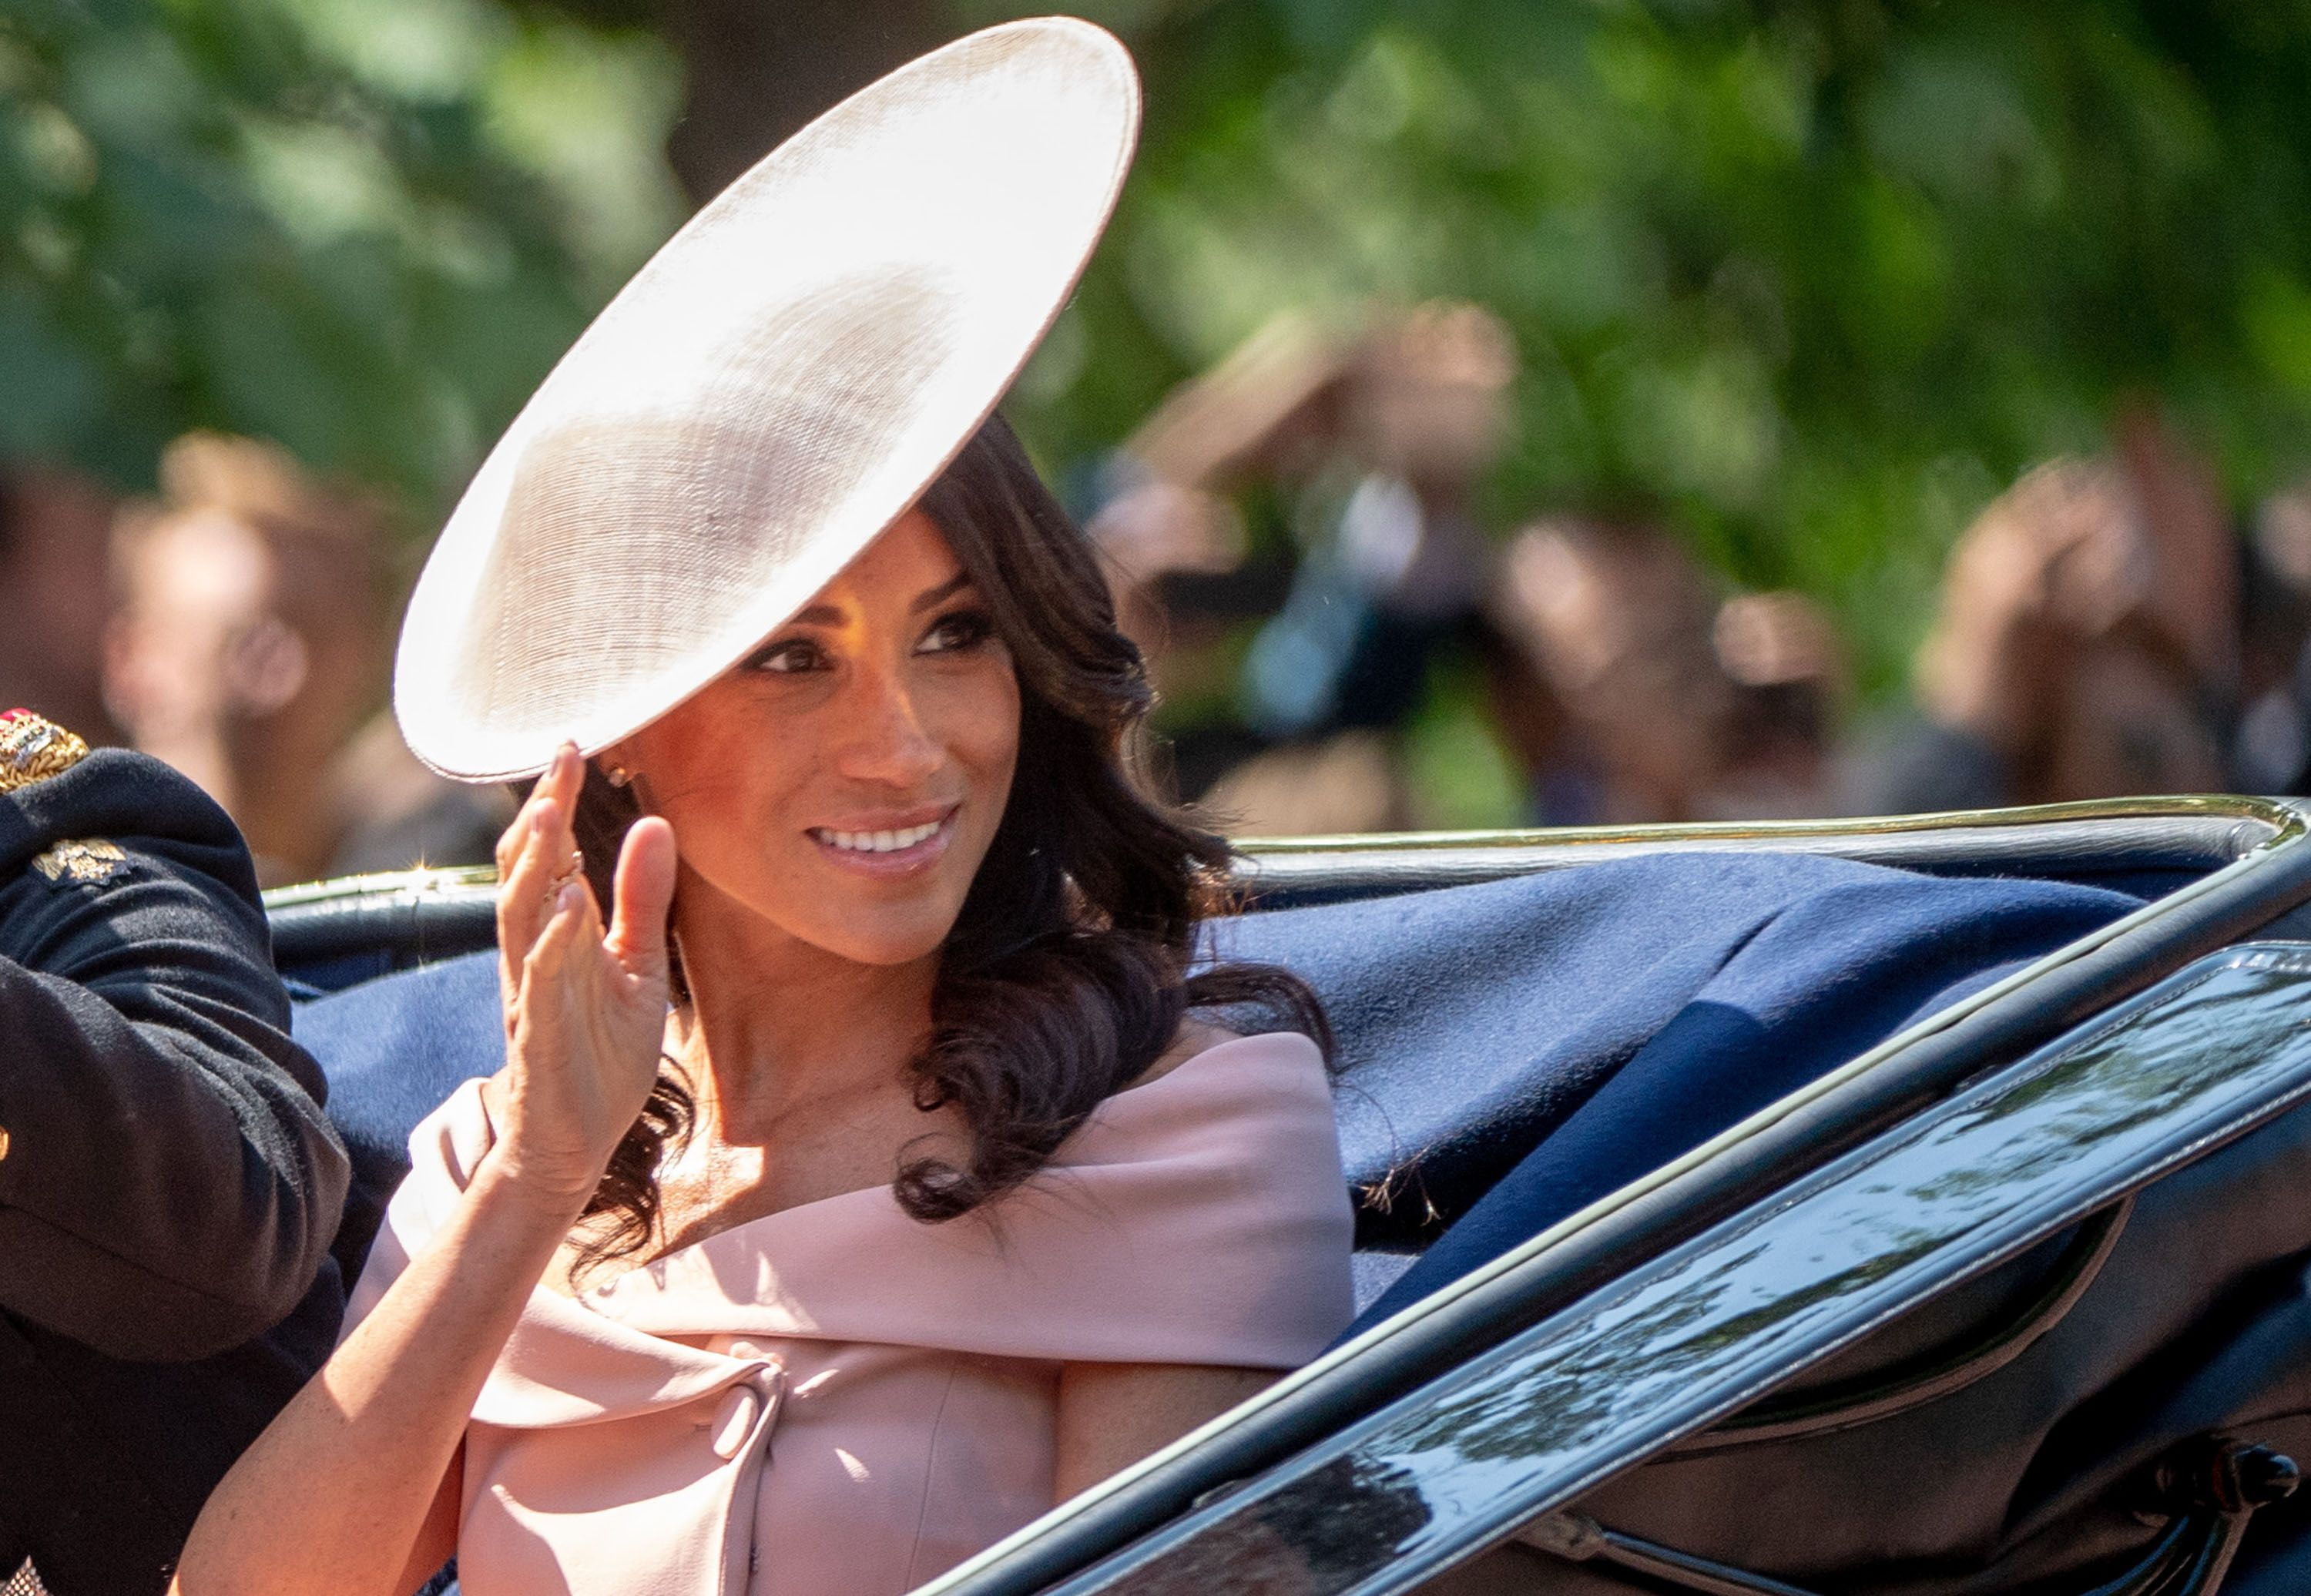 b7c09524589 Meghan Markle Just Arrived at Trooping the Colour in a Gorgeous  Off-the-Shoulder Blush Dress